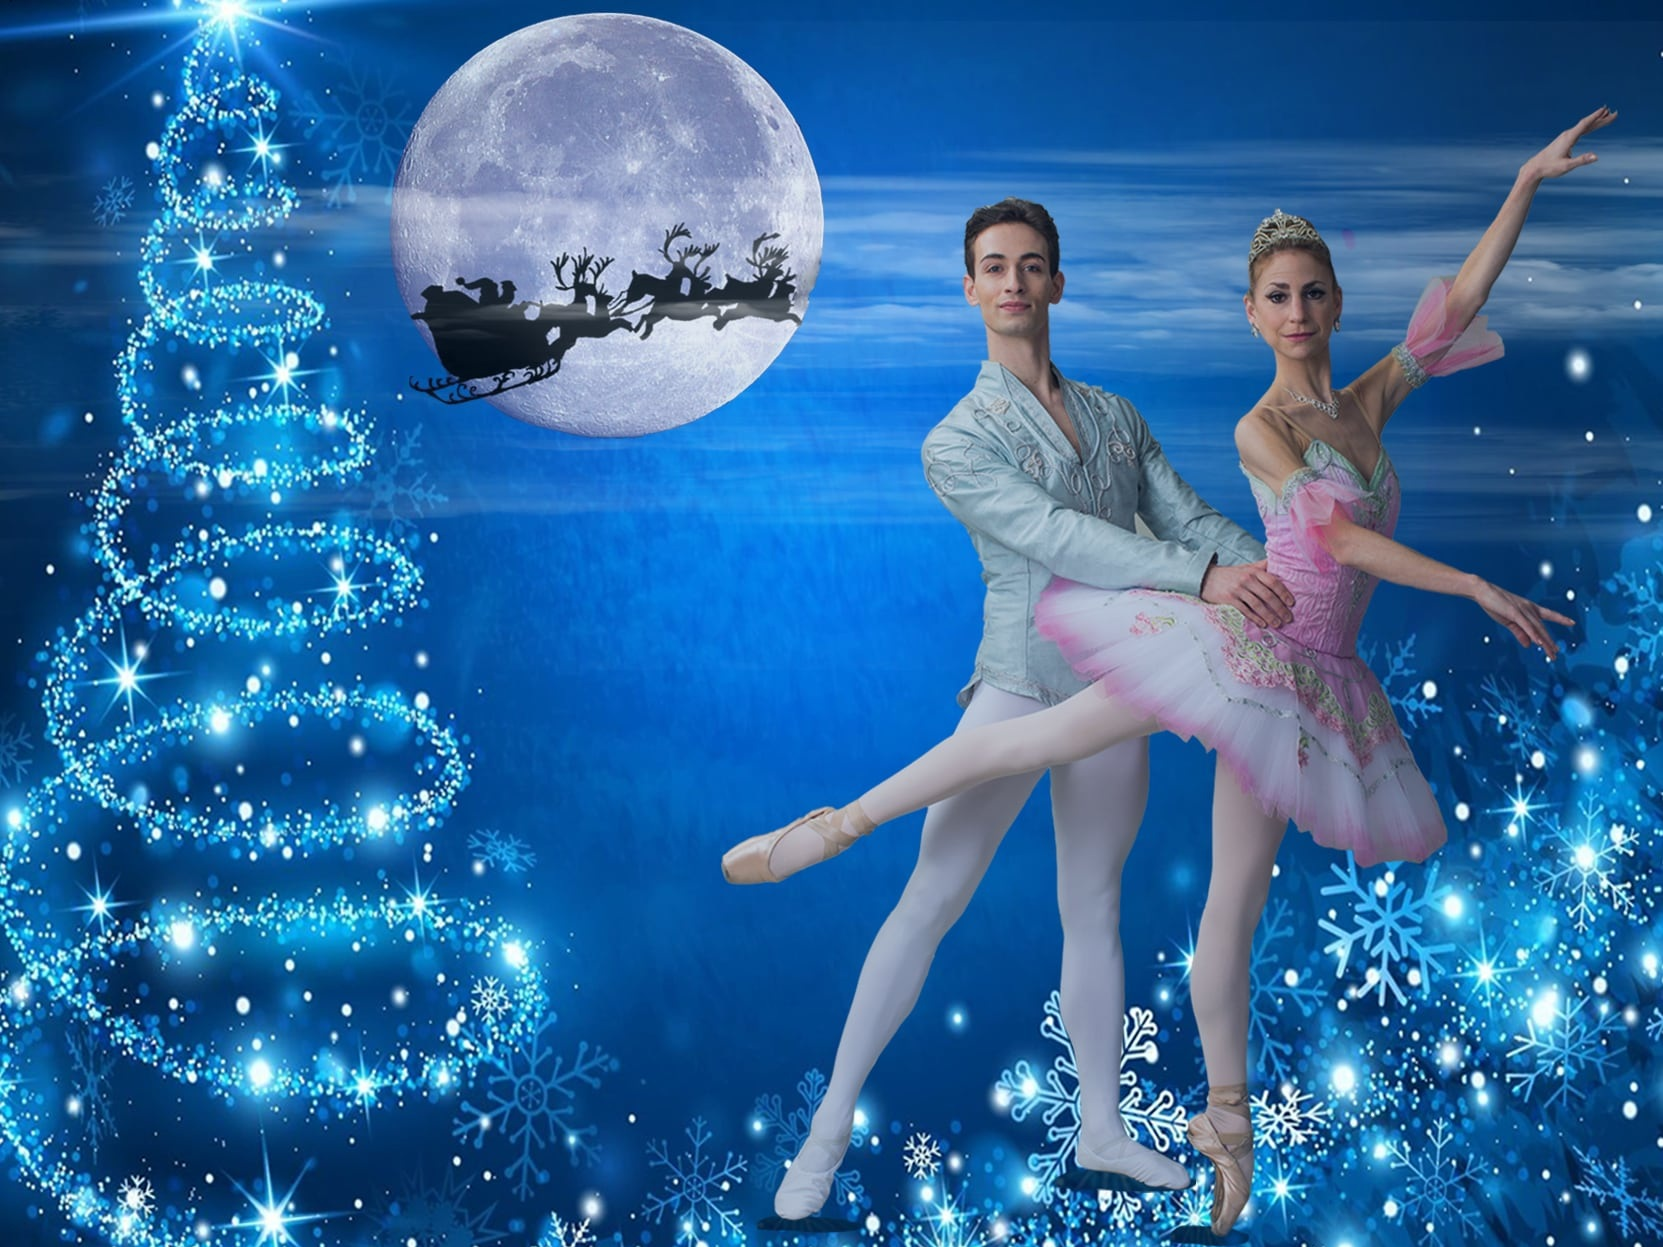 "THE NUTCRACKERBALLET VICTORIA - December 7, 2019 - 8pmBe transported by this beloved Christmas tradition with a unique and fresh twist as mischievous Clara liberates magical dolls, mice, soldiers, and sugar plum fairies who spiral to soaring music, and bring to life the story of the Nutcracker. Ballet Victoria'sbeautifully professional production is a holiday tradition to be enjoyed by all generations.""The endearing holiday classic fine-tuned into a sweet adventure the whole family will love! All the characters we know and love, all of Tchaikovsky's magical melodies, plus so many new surprises add up to holiday magic!"" - Patron review"